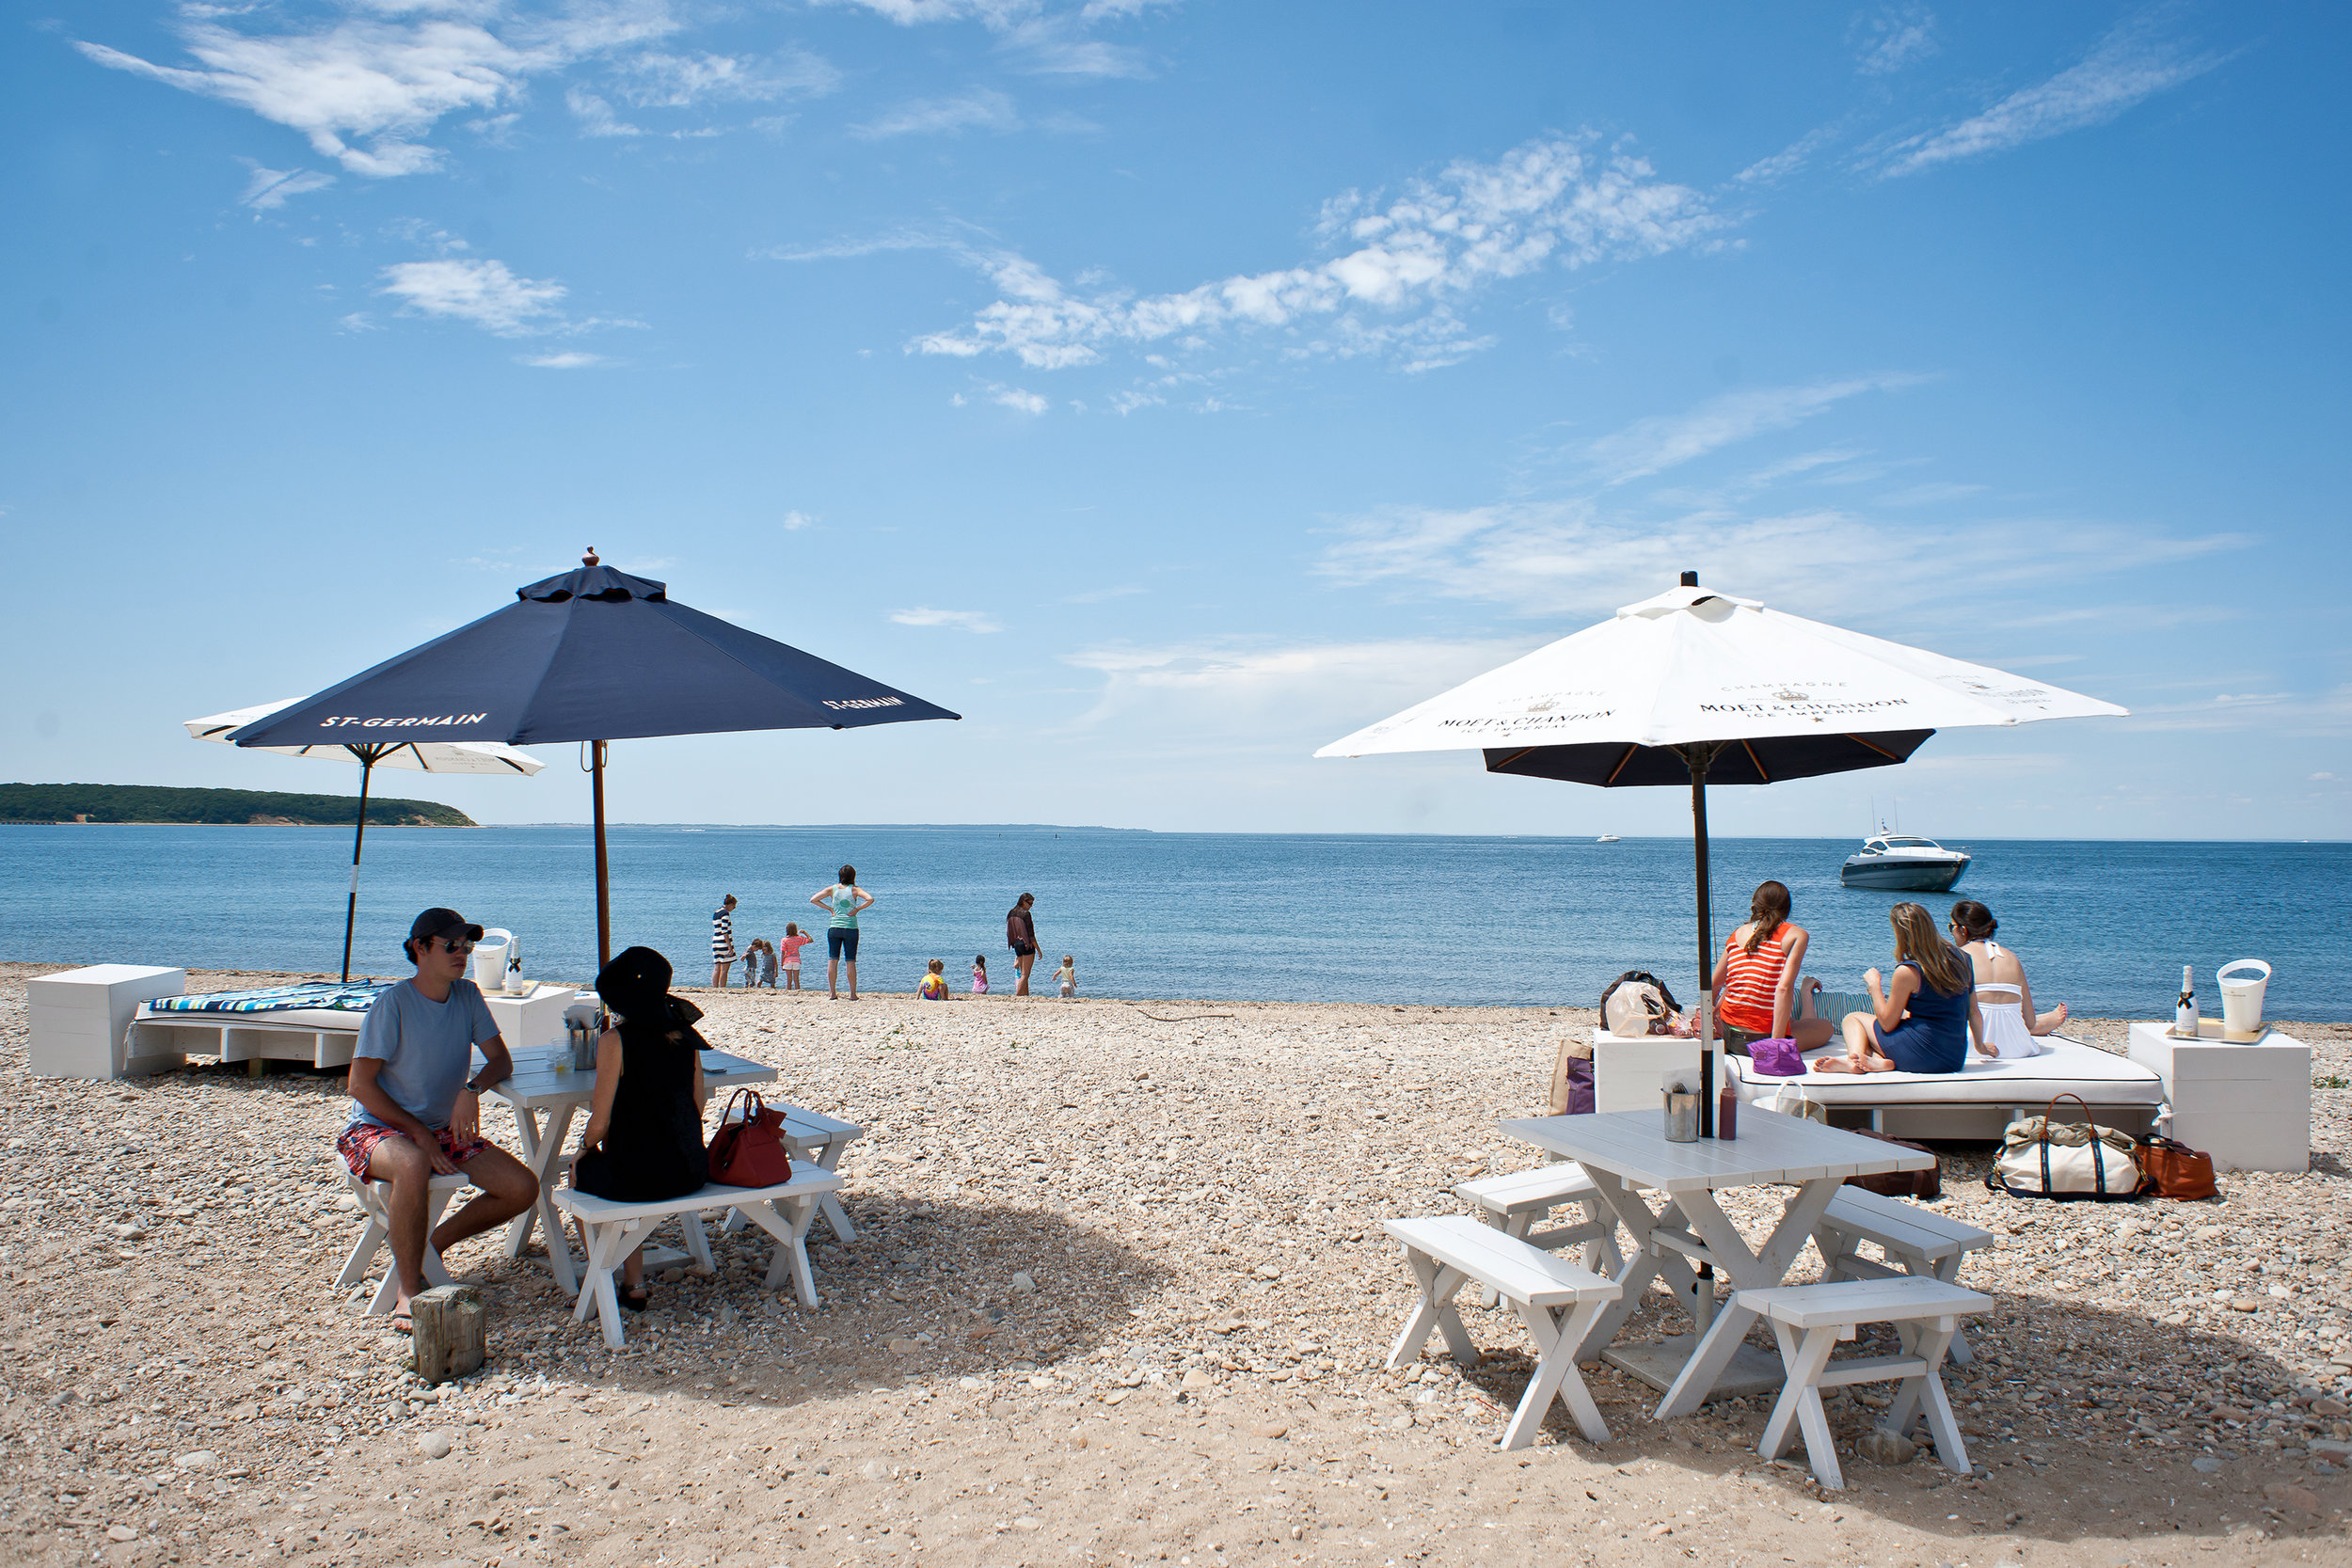 navybeach-outdoor-dining-3-1024x683.jpg